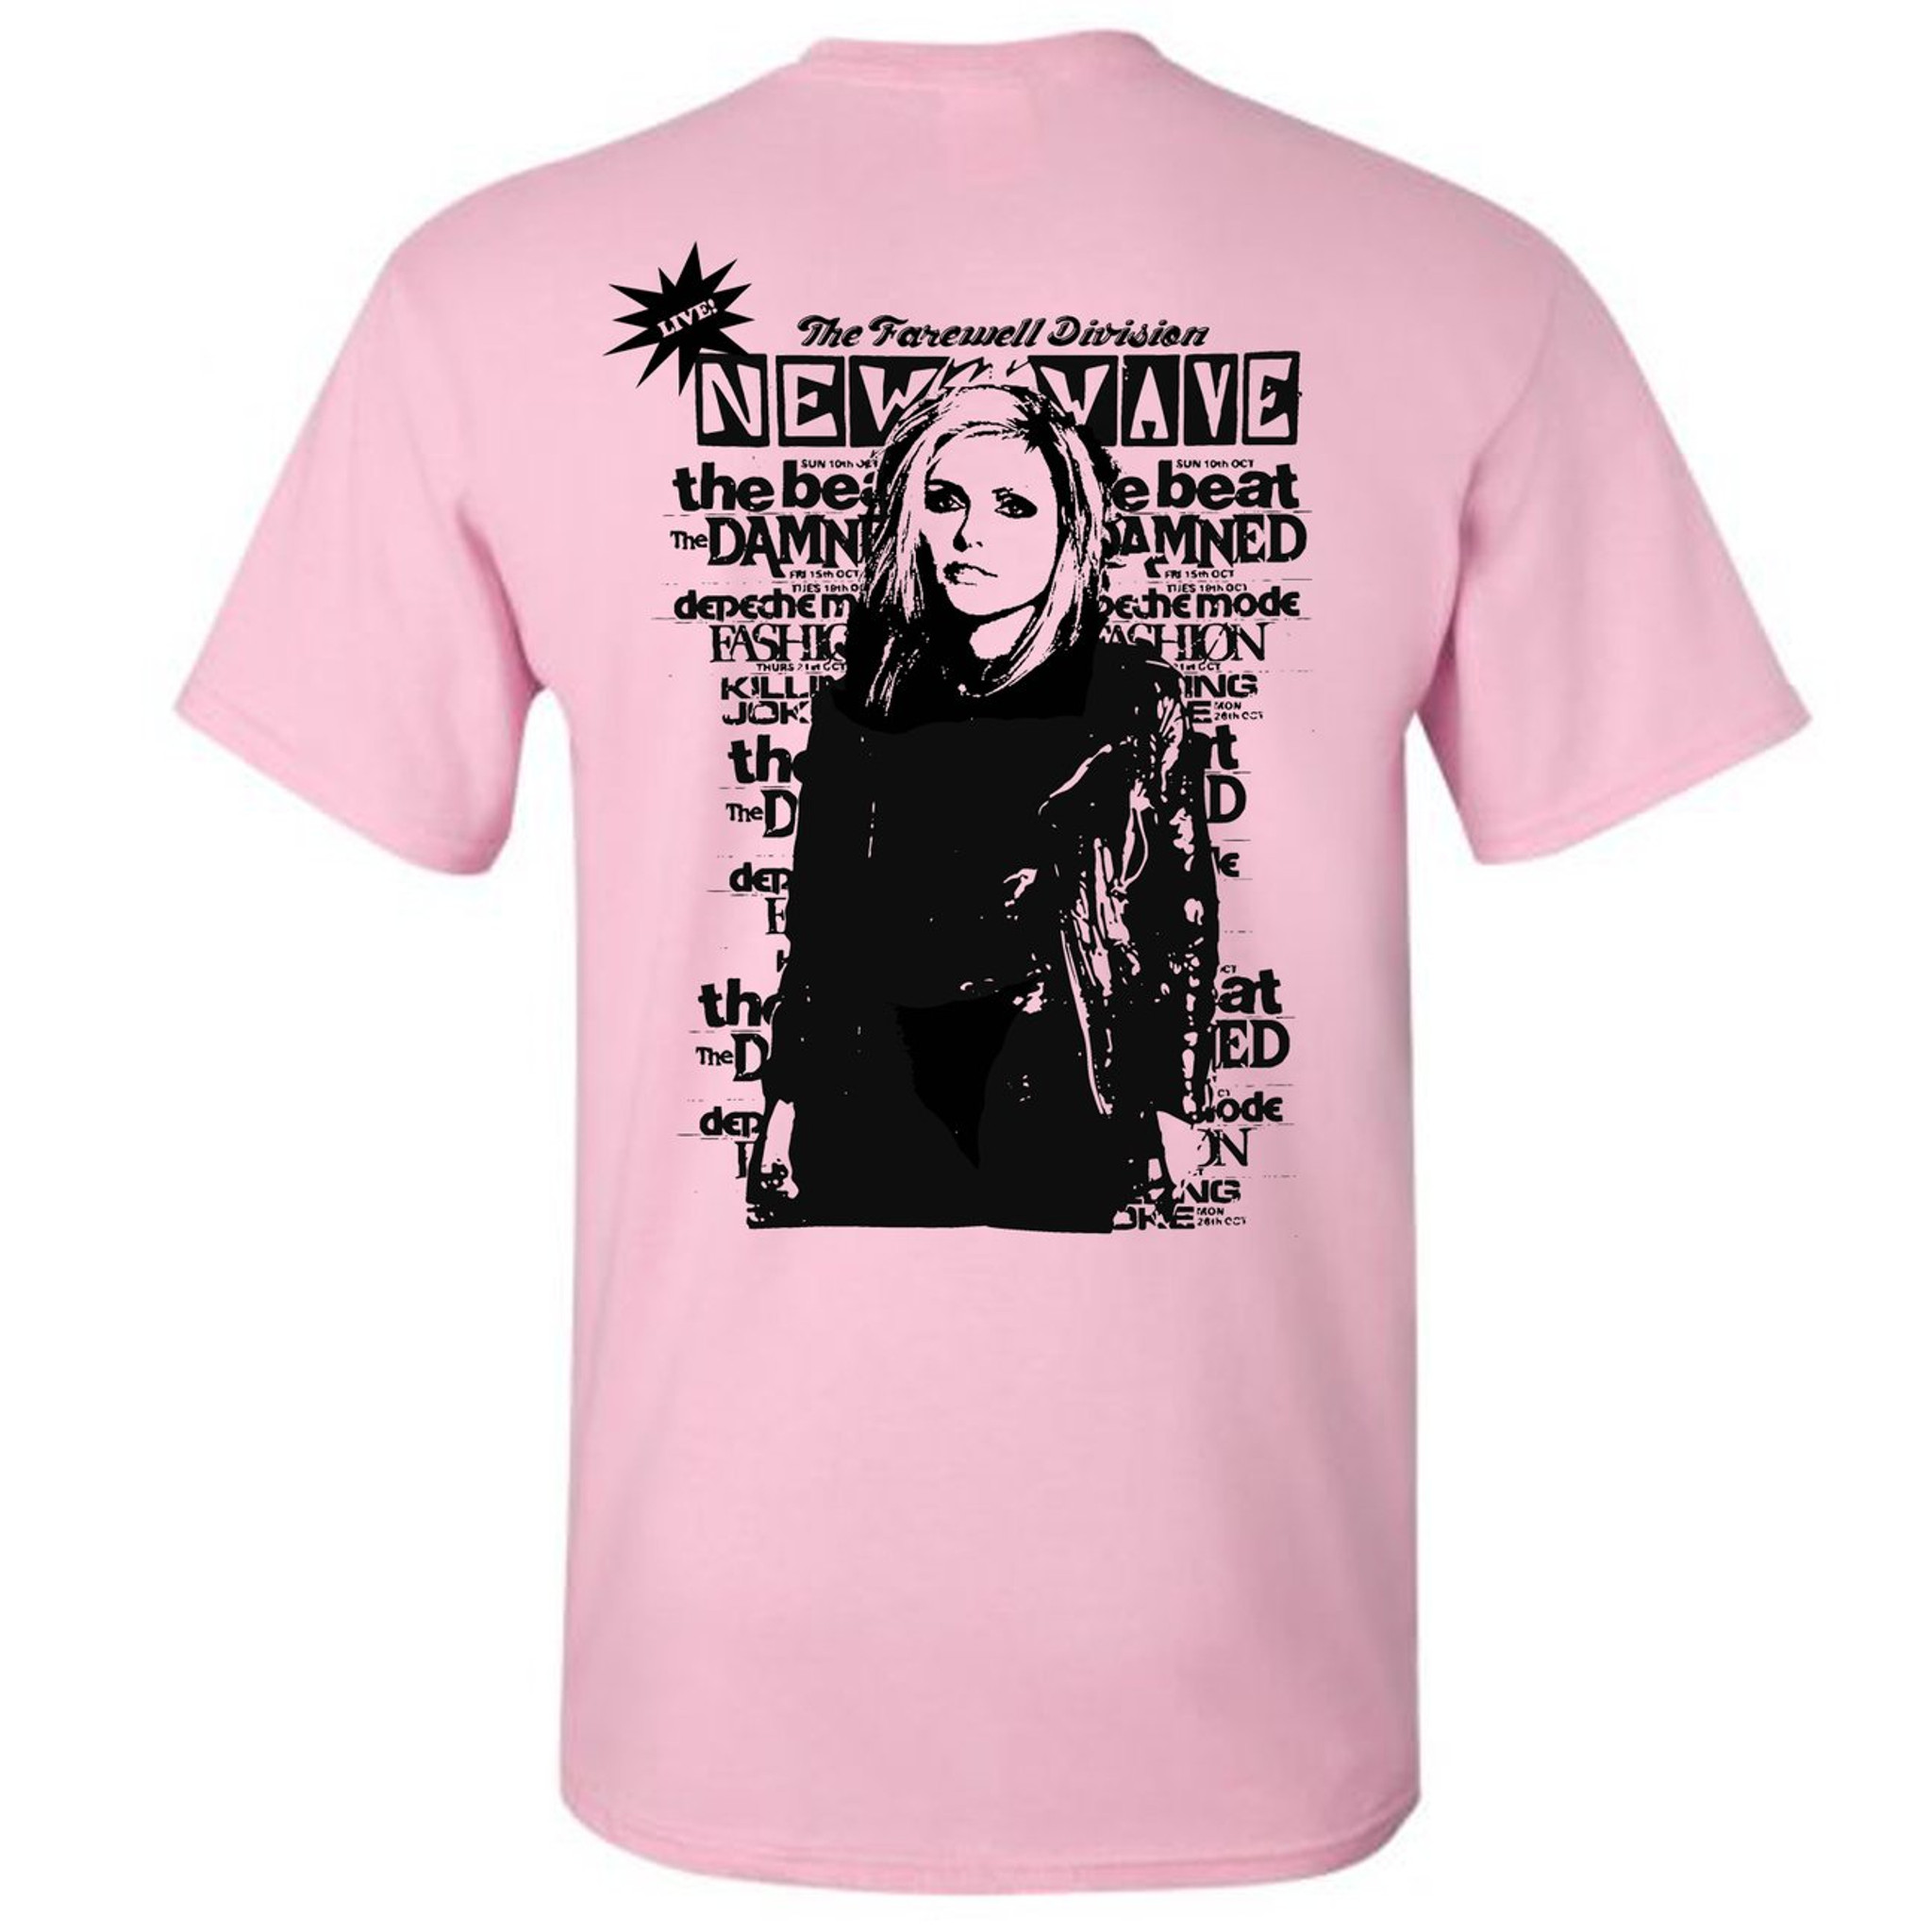 """New Wave Woman"" Tee from Farewell"